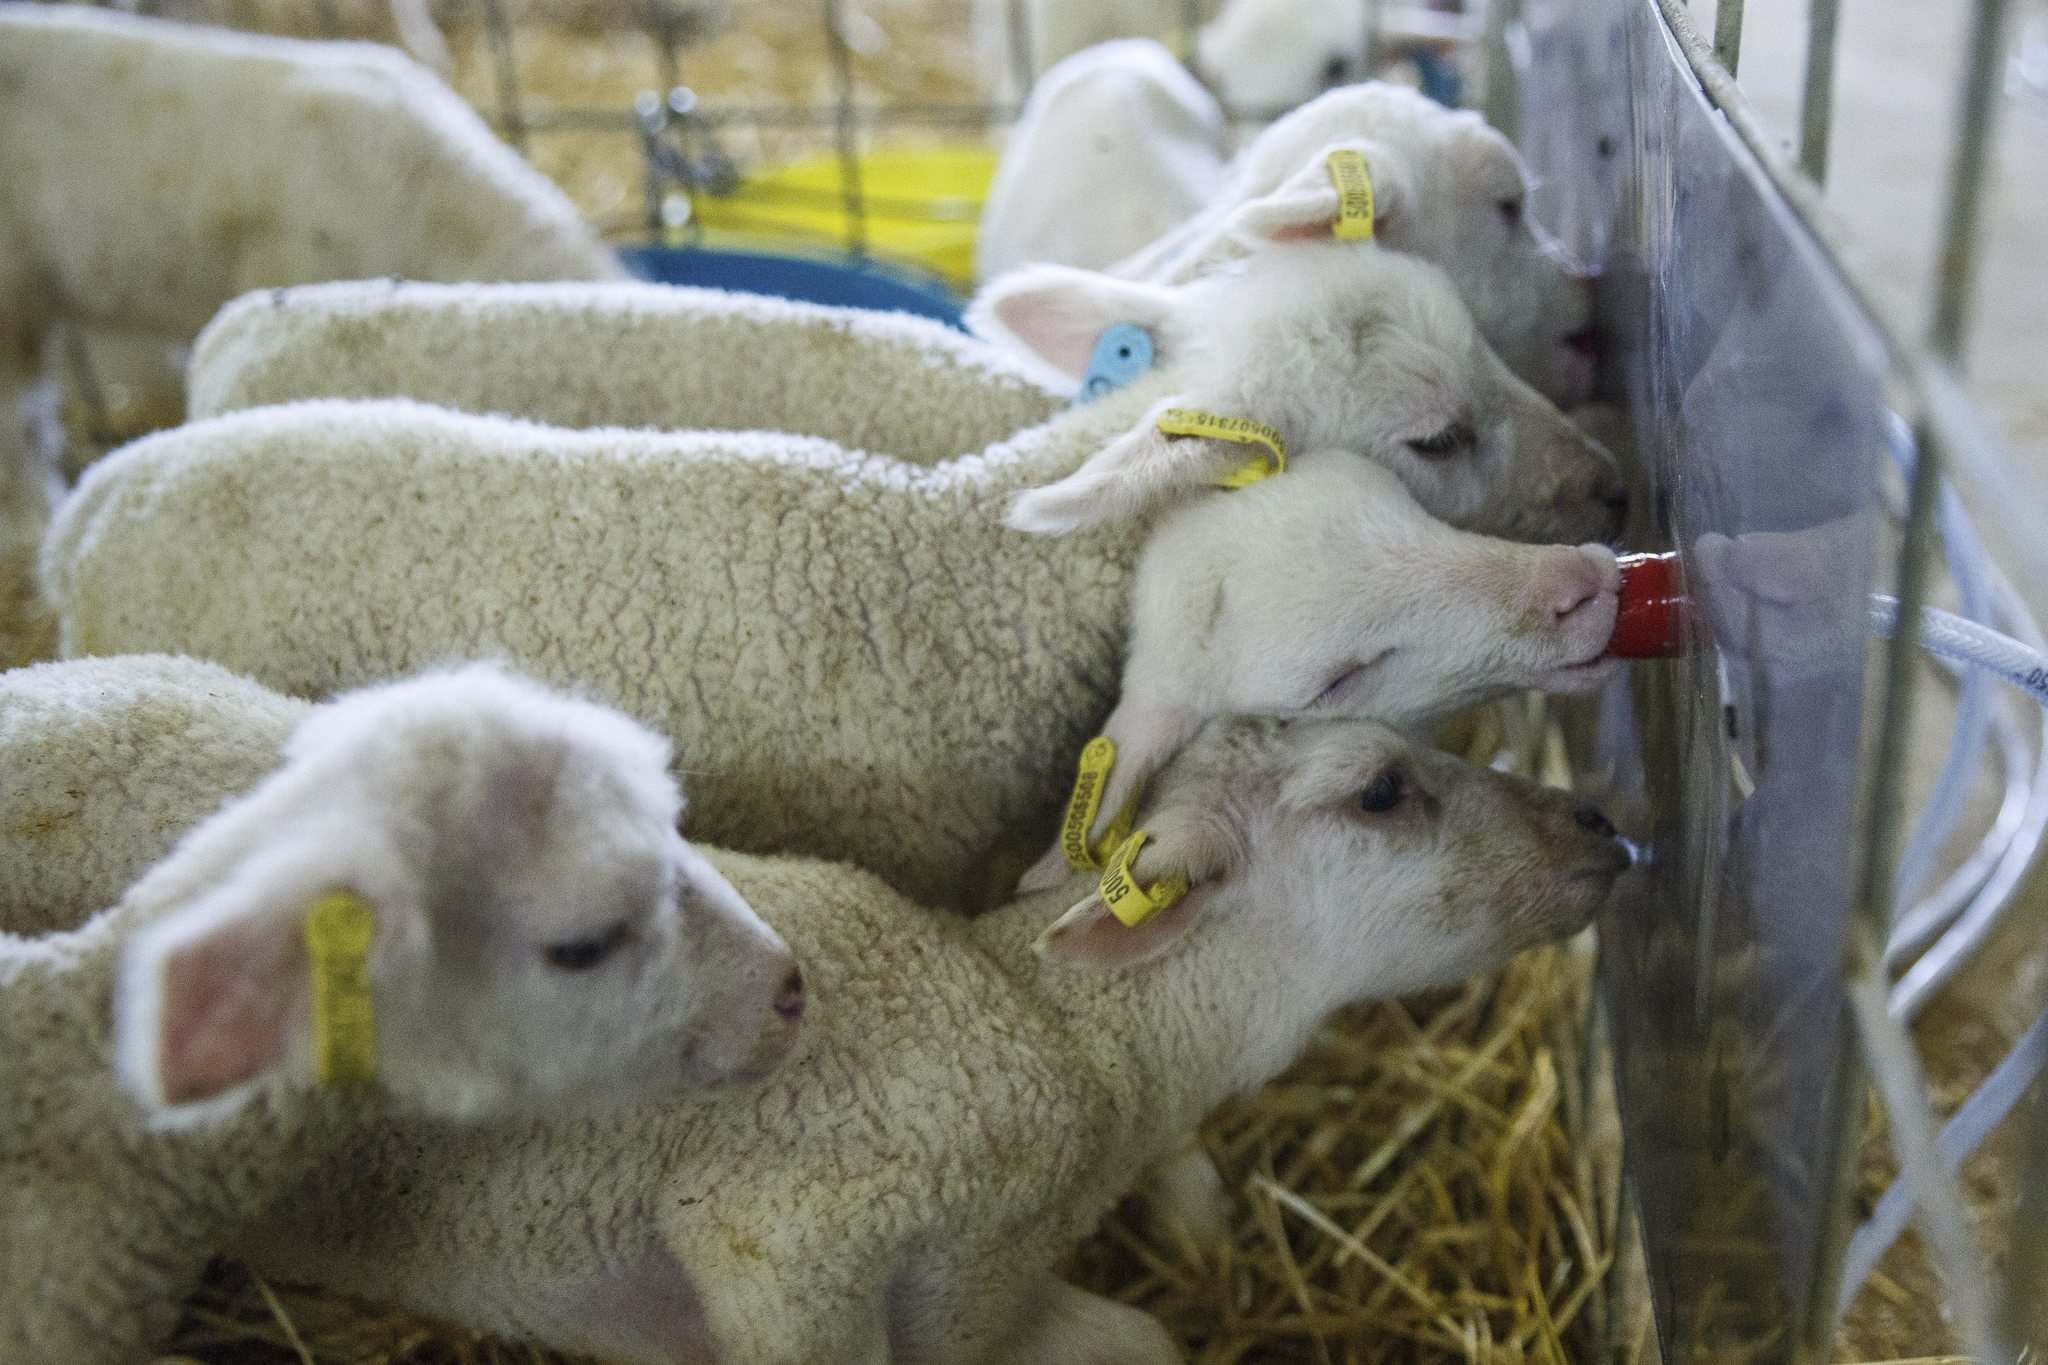 Ewes typically nurse only two lambs from their litters at Smith's farm so other lambs use a self-feeding nursery within the lambing barn.